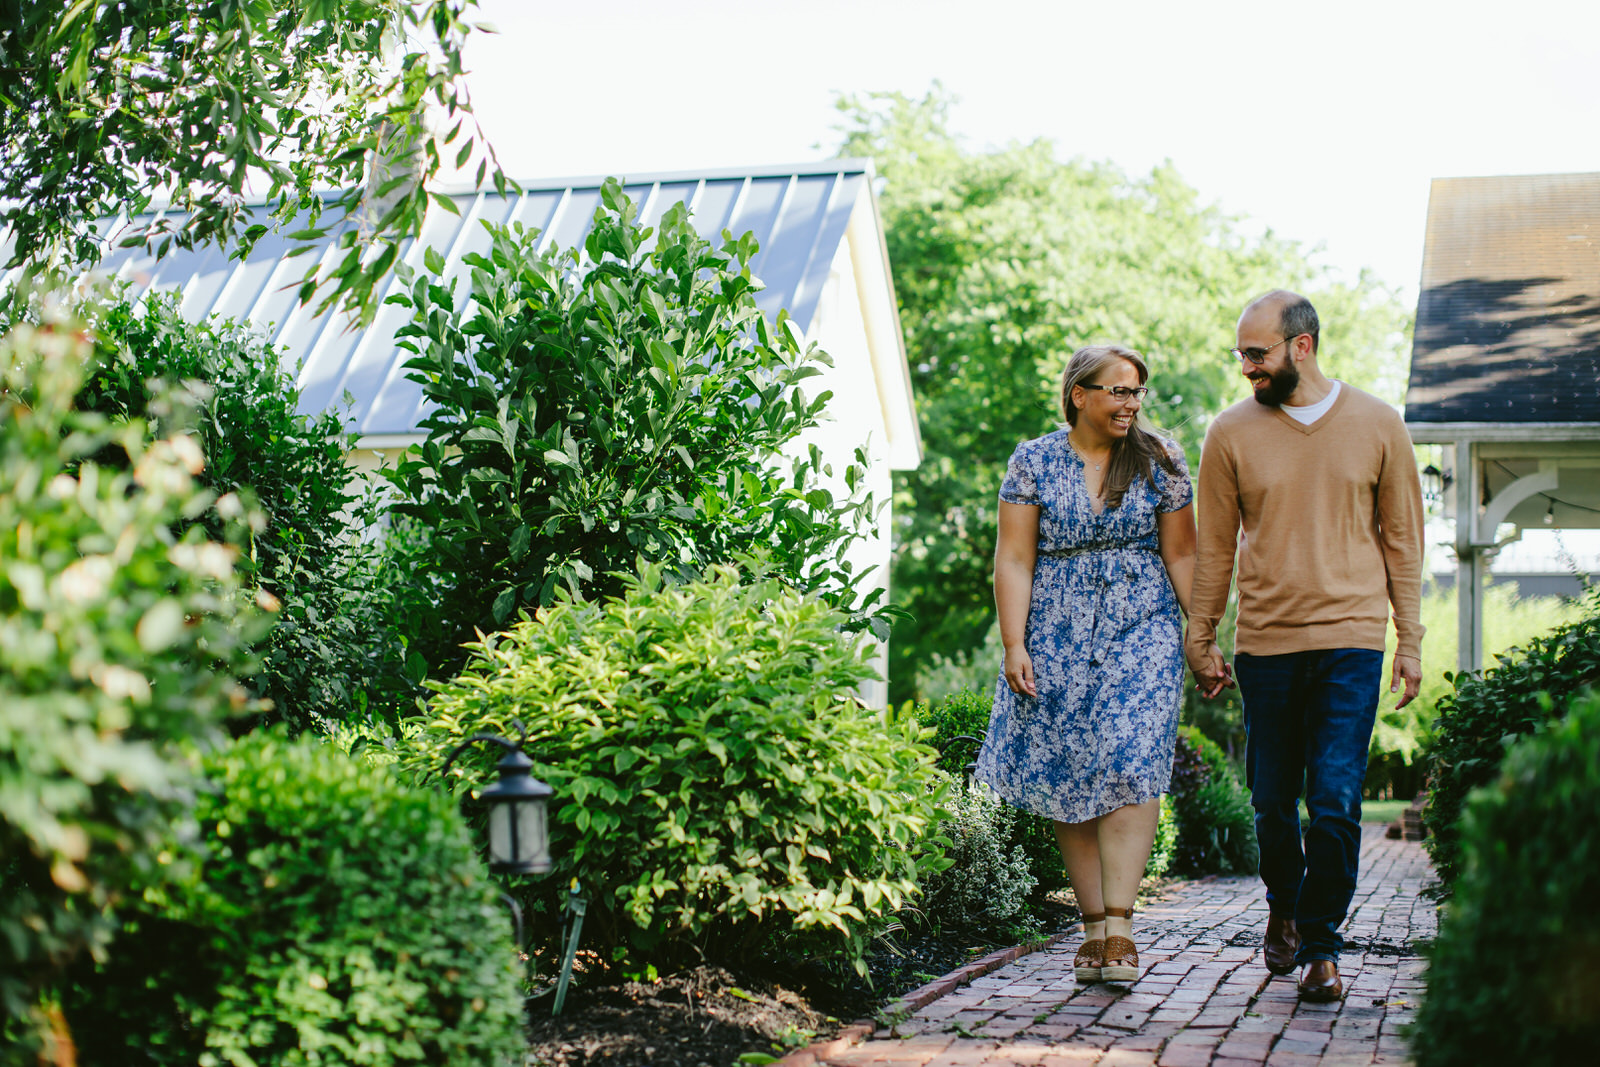 Tiny_House_Photo_Proposal_Photographer_Nashville_TN_Weddings_Portraits.jpg